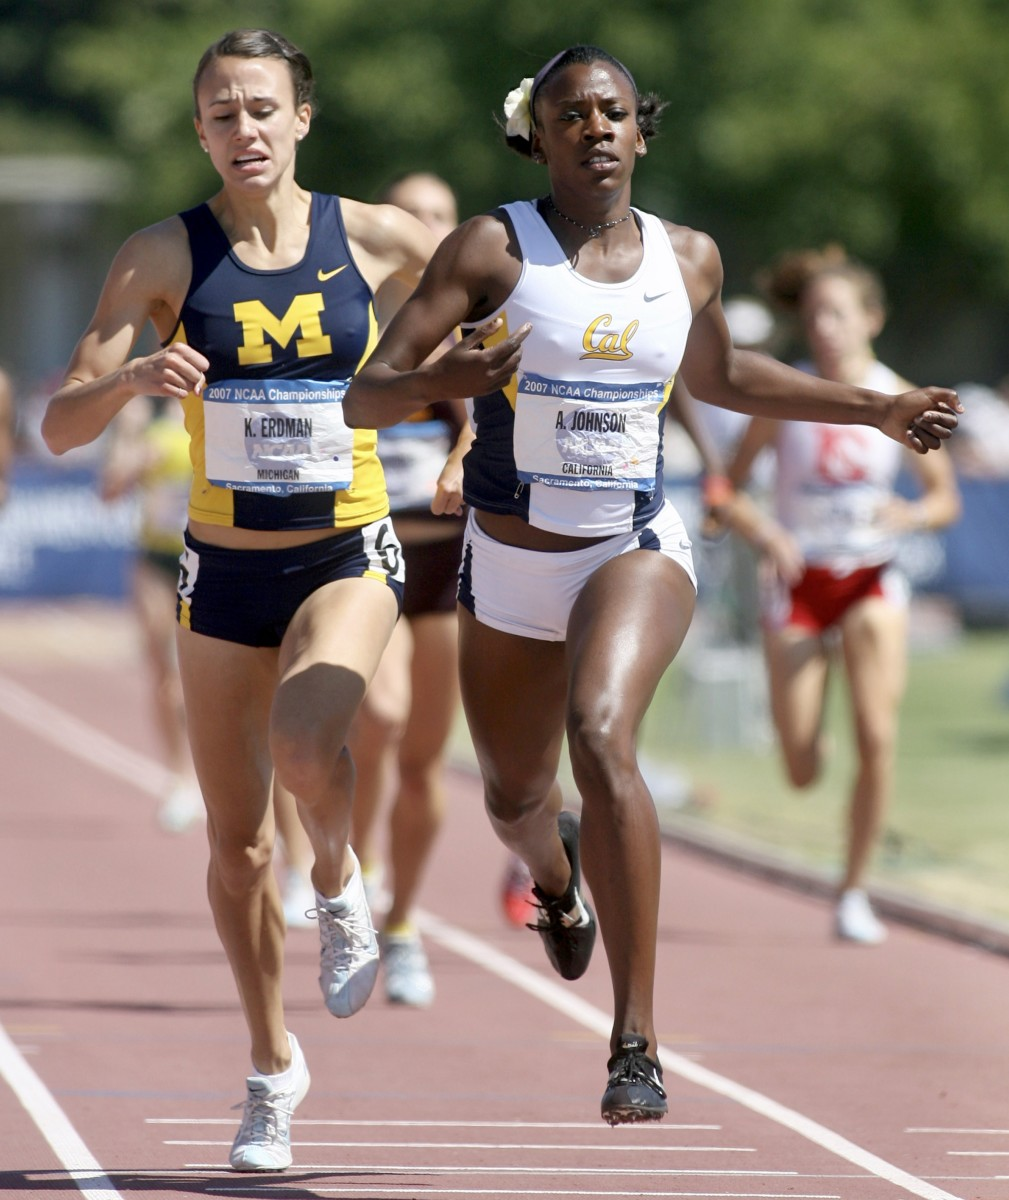 Alysia Johnson Montaño sprints to victory in the 800 meters at the 2007 NCAA Championships.